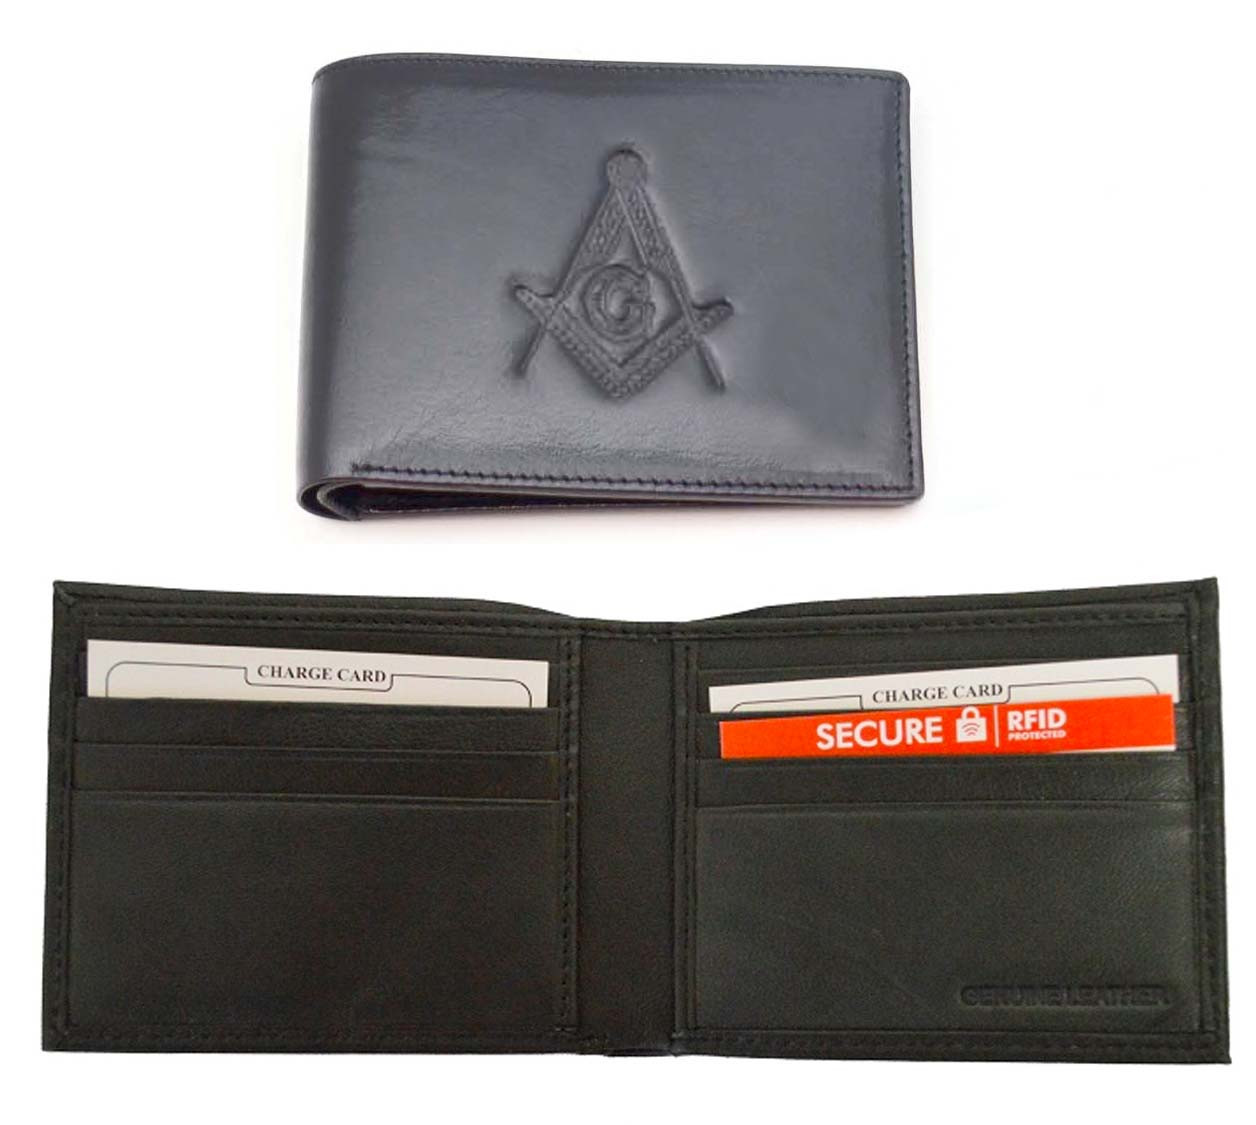 d477038b4cd7 ... Black Leather Wallet with Large Centered Masonic Compass and Square.  Multiple pockets and ID compartments - wallet for Freemasons. Image 1